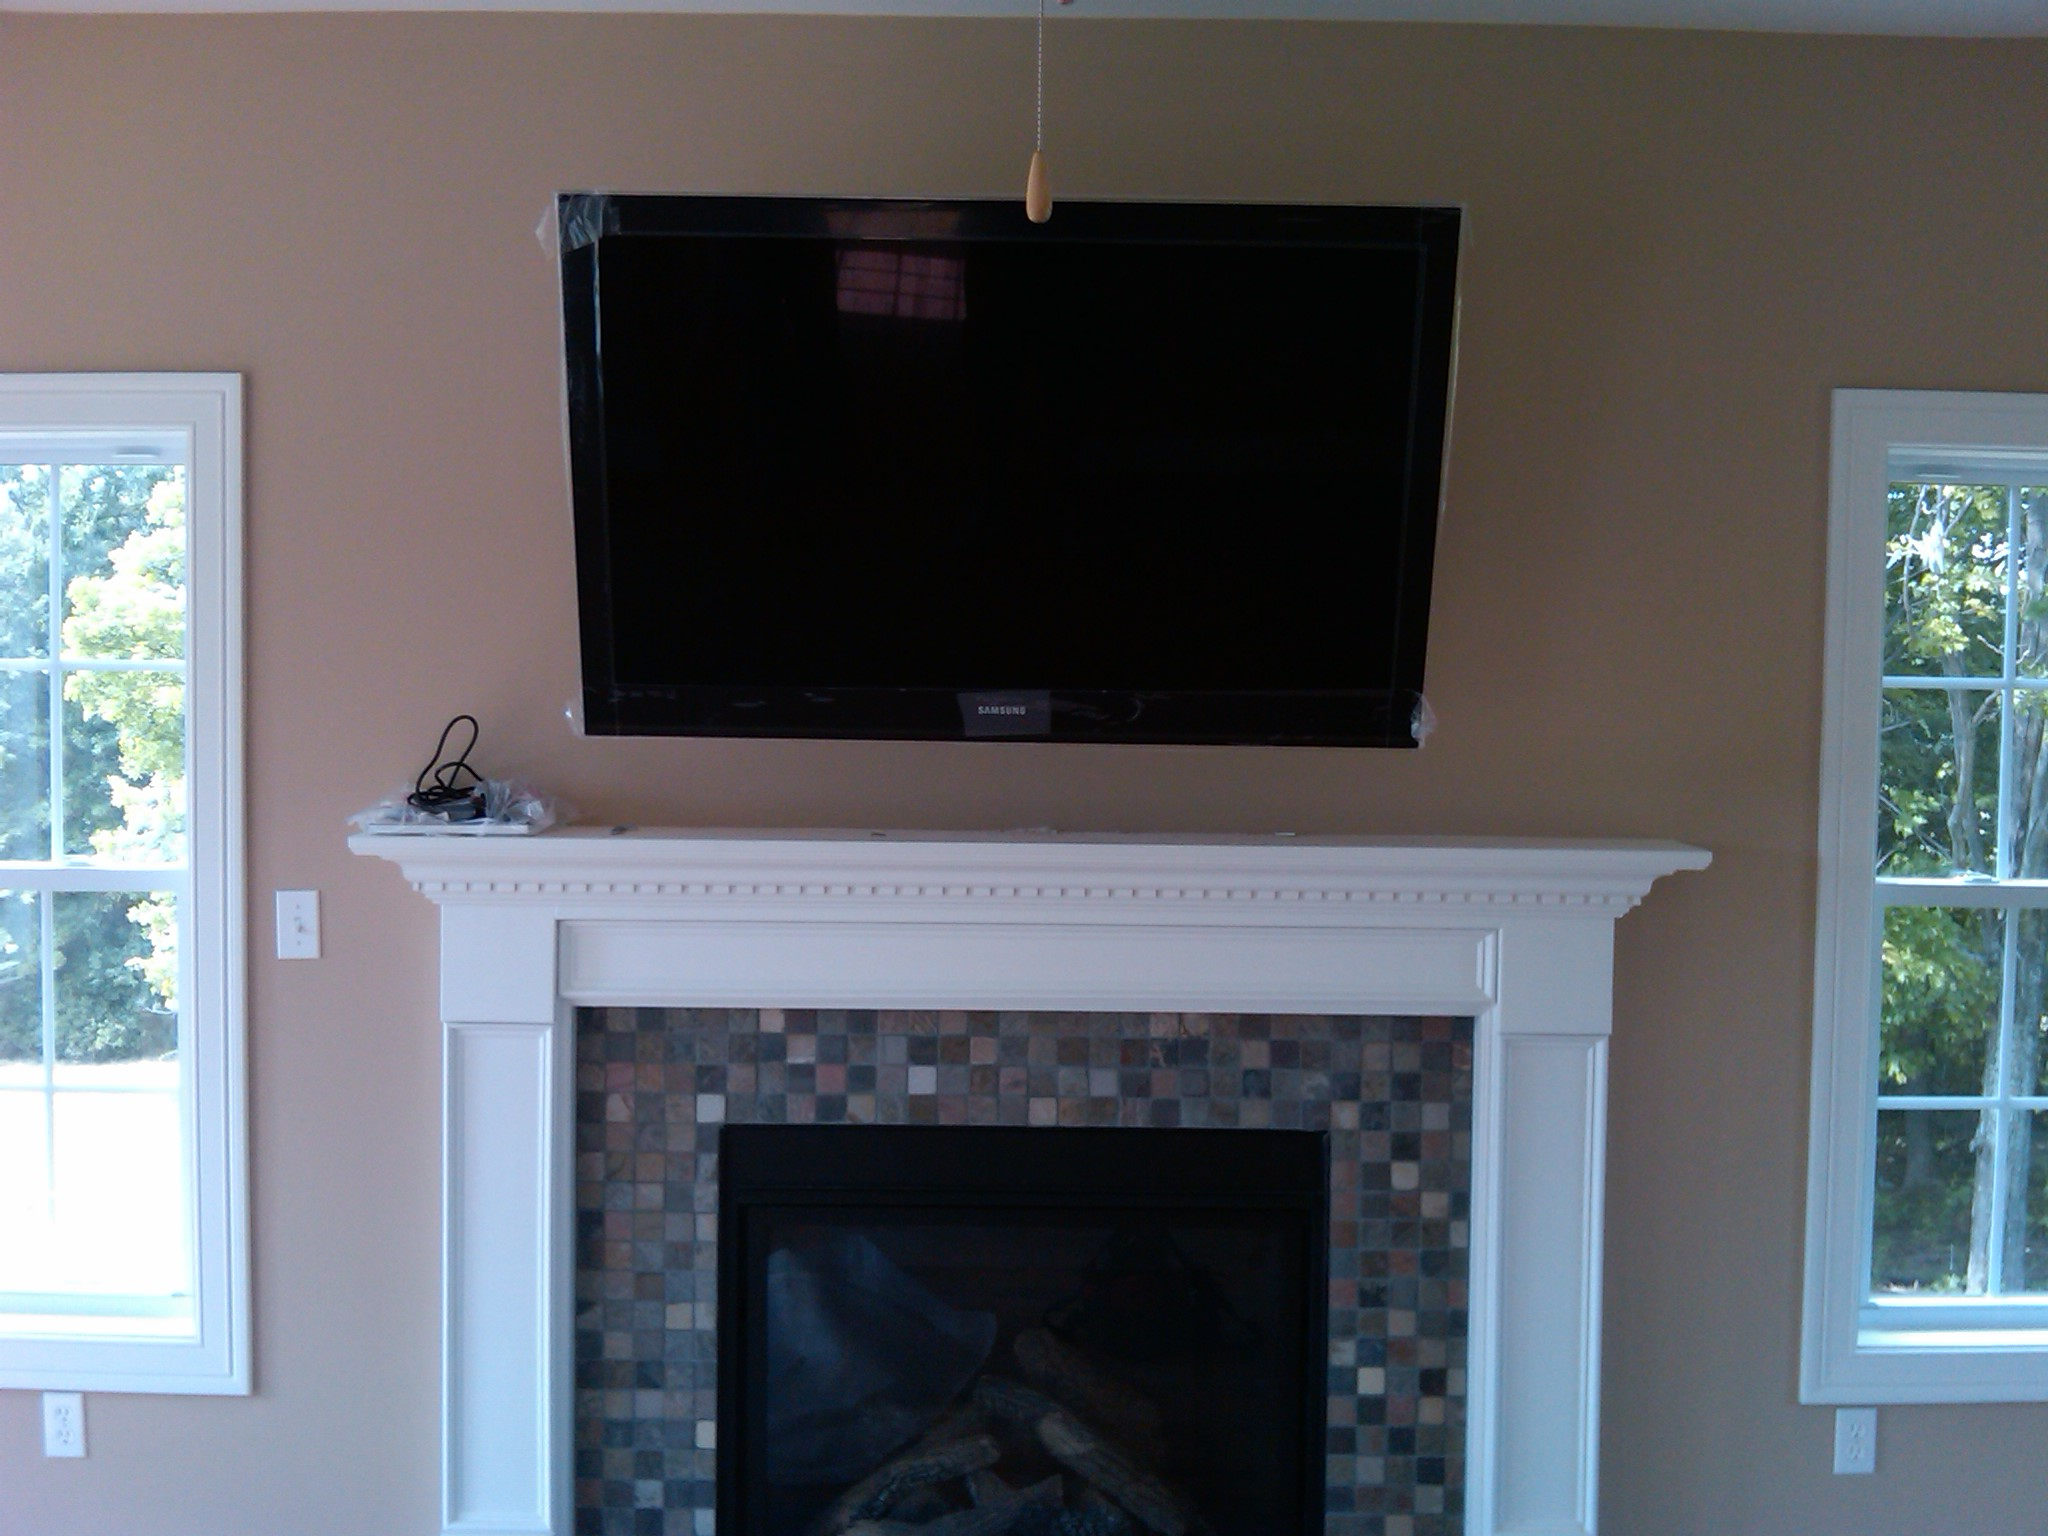 Mount tv to brick fireplace large image for mounting above brick fireplace enchanting ideas with large mount tv to brick fireplace can you hang a lcd tv over gas fireplace best image voixmag can you mount a flat screen tv above gas fireplace best image